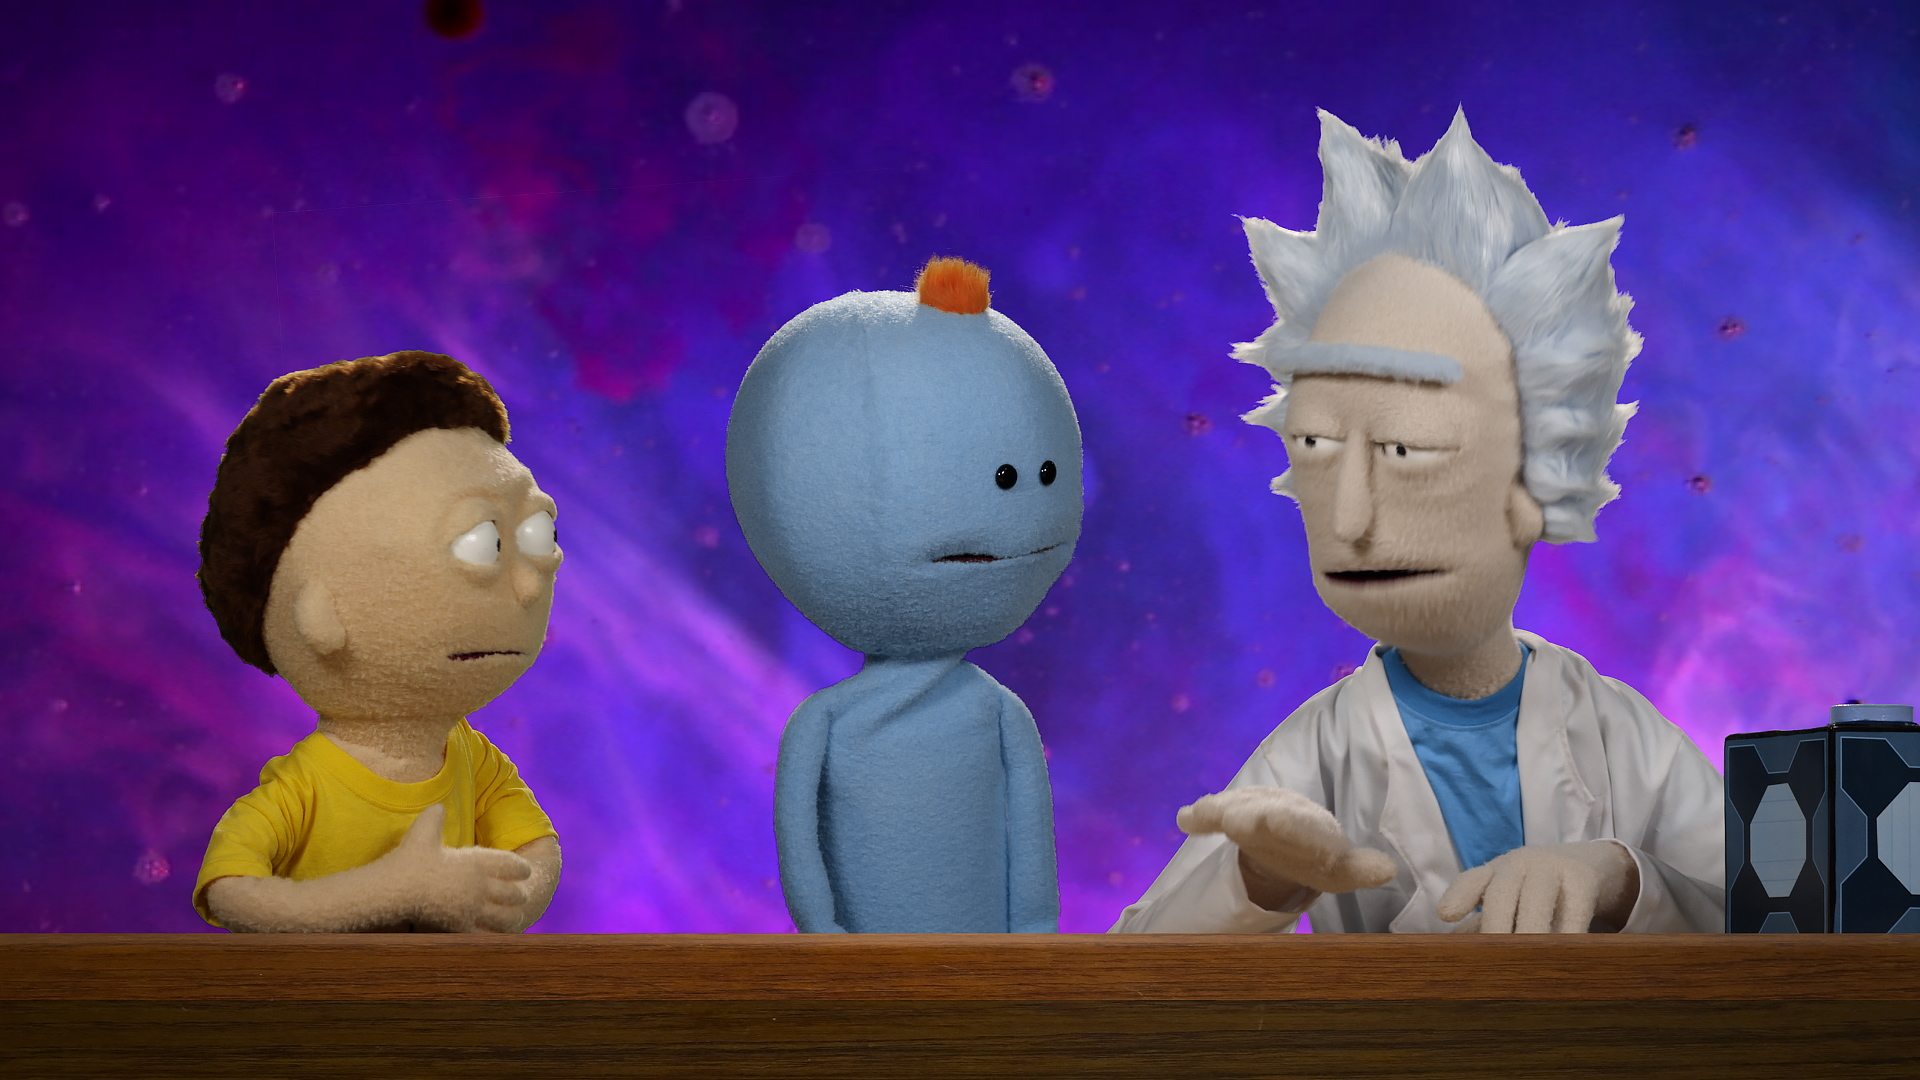 Rick and Morty puppets from the Rick and Morty Blu-ray commercial shot and edited by Todd Bishop